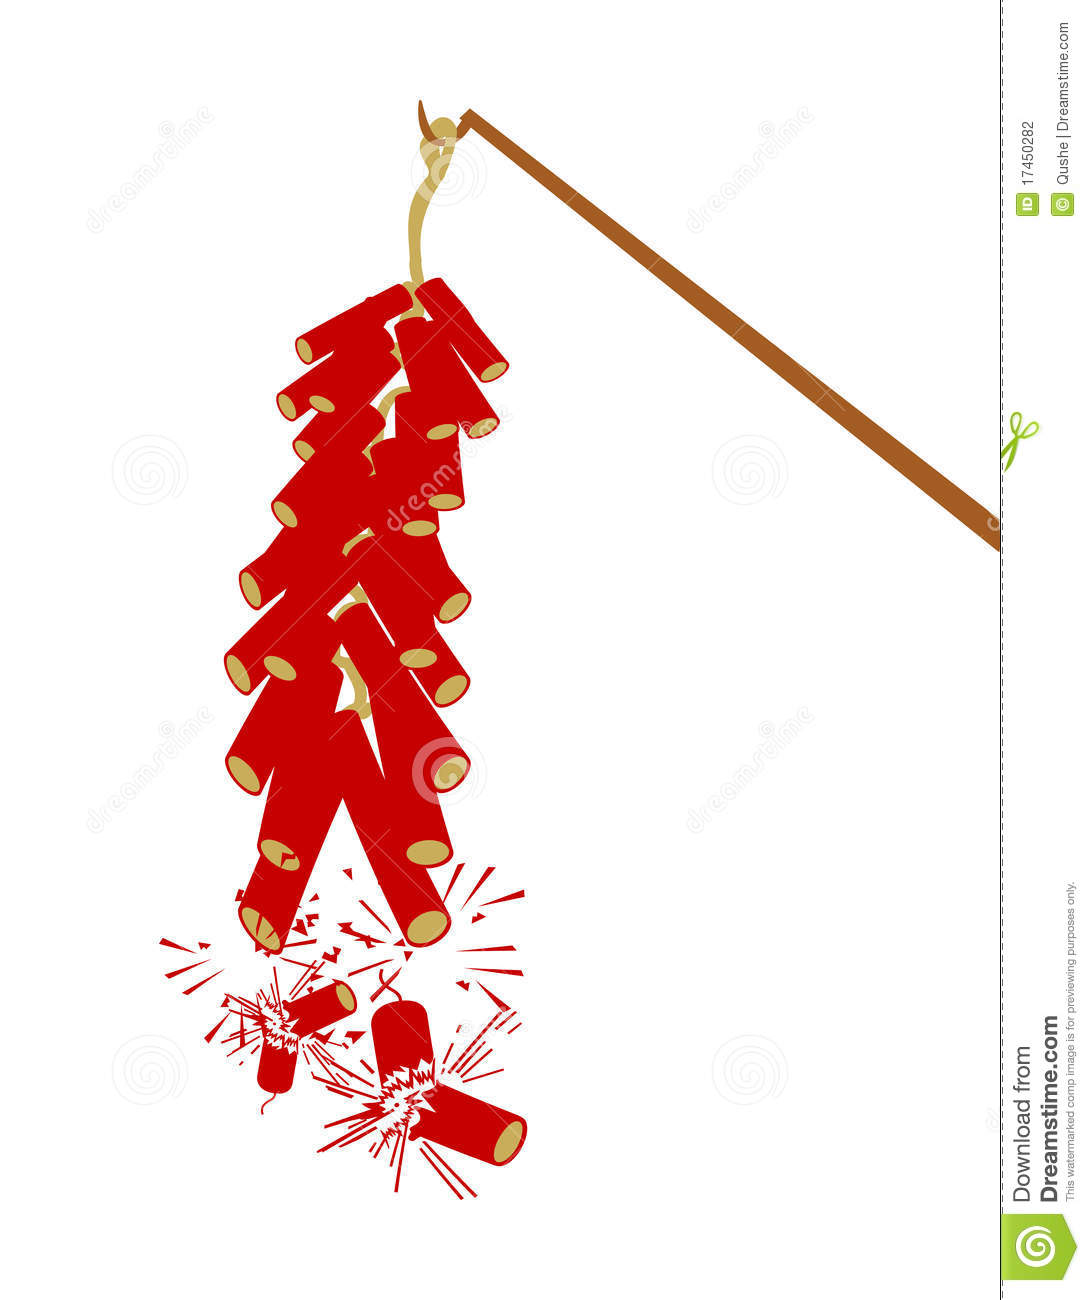 1090x1300 Firecracker New Year Border Merry Christmas And Happy New Year 2018